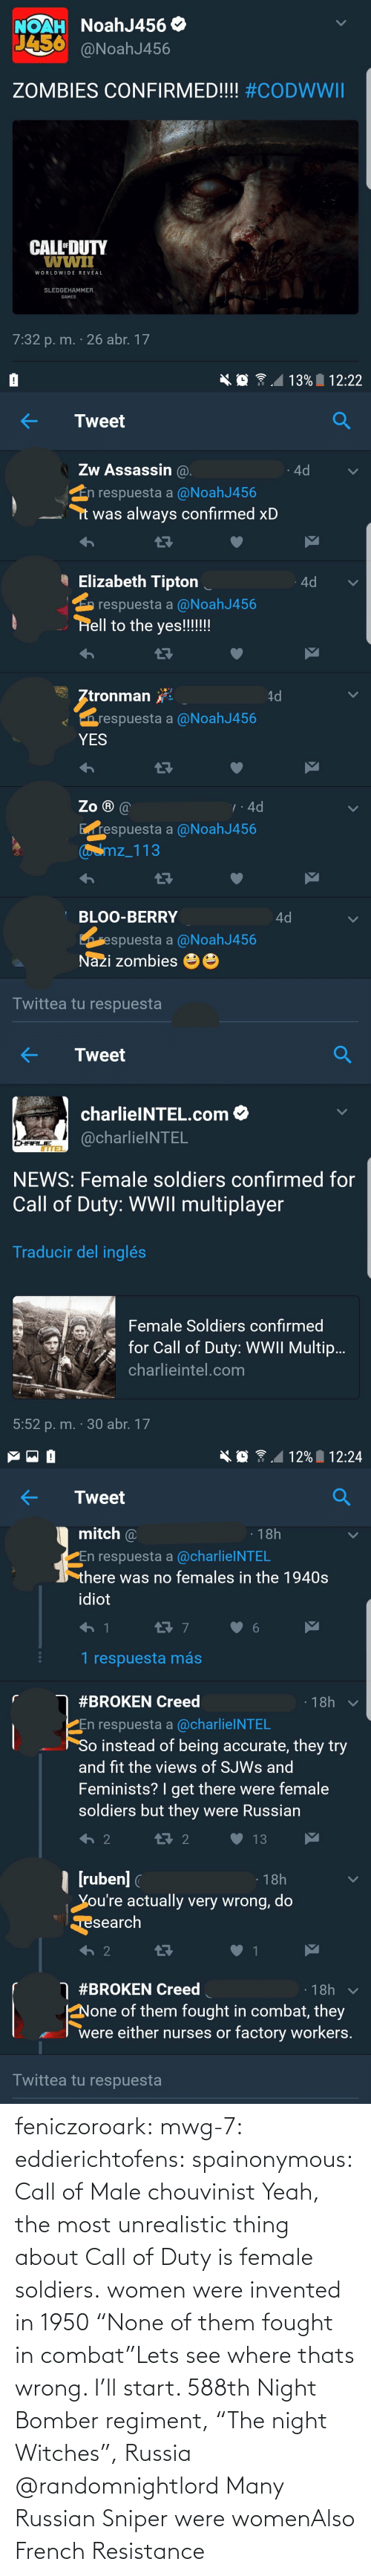 "female: NoahJ456 O  NOAH  J456  @NoahJ456  ZOMBIES CONFIRMED!!!! #CODWWII  CALL'DUTY  wwiI  WORLDWIDE REVEAL  SLEDGEHAMMER  GAMES  7:32 p. m. · 26 abr. 17   13% 12:22  Tweet  Zw Assassin @.  4d  En respuesta a @NoahJ456  it was always confirmed xD  I Elizabeth Tipton  4d  E respuesta a @NoahJ456  Hell to the yes!!!!!!  Ztronman  4d  n respuesta a @NoahJ456  YES  Zo ® @  7:4d  Erespuesta a @NoahJ456  Caamz_113  BLOO-BERRY  4d  respuesta a @NoahJ456  Nazi zombies  Twittea tu respuesta   Tweet  charlielNTEL.com O  @charlielNTEL  CHARLIE  ITTEL  NEWS: Female soldiers confirmed for  Call of Duty: WWII multiplayer  Traducir del inglés  Female Soldiers confirmed  for Call of Duty: WWII Multip..  charlieintel.com  5:52 p. m. · 30 abr. 17   12% I 12:24  Tweet  mitch @  · 18h  PEn respuesta a @charlielNTEL  there was no females in the 1940s  idiot  1 respuesta más  · 18h  #BROKEN Creed  En respuesta a @charlielNTEL  So instead of being accurate, they try  and fit the views of SJWS and  Feminists? I get there were female  soldiers but they were Russian  t7 2  13  | (ruben] (  You're actually very wrong, do  ·18h  Tesearch  2  O #BROKEN Creed  · 18h  None of them fought in combat, they  were either nurses or factory workers.  Twittea tu respuesta feniczoroark:  mwg-7:  eddierichtofens:   spainonymous: Call of Male chouvinist Yeah, the most unrealistic thing about Call of Duty is female soldiers.   women were invented in 1950    ""None of them fought in combat""Lets see where thats wrong. I'll start. 588th Night Bomber regiment, ""The night Witches"", Russia @randomnightlord    Many Russian Sniper were womenAlso French Resistance"